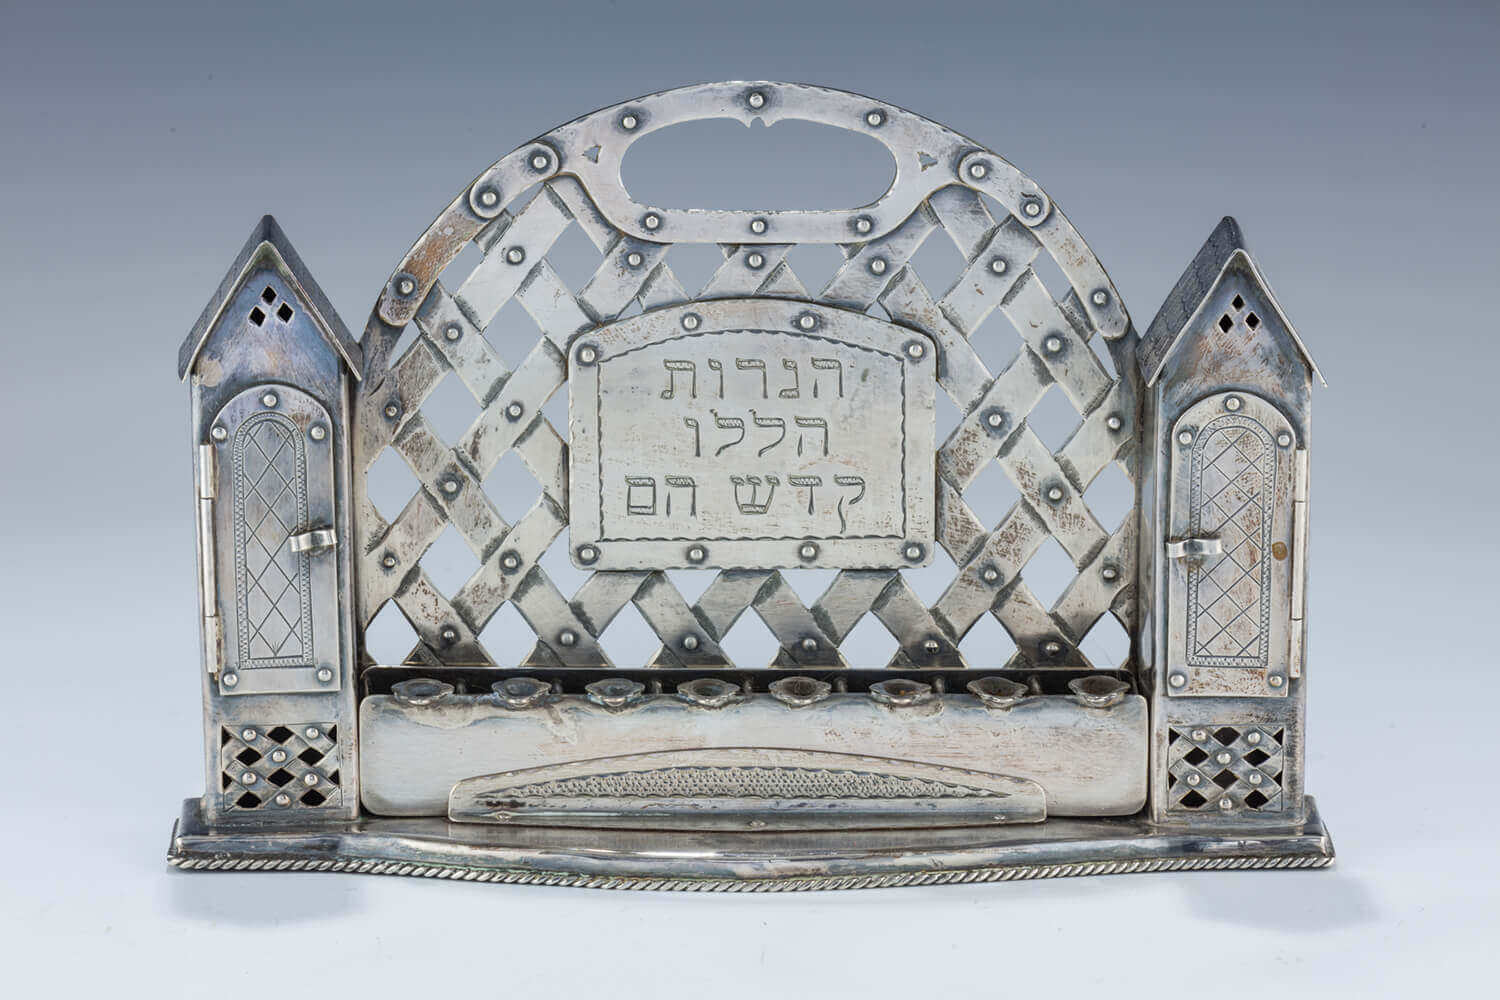 148. A SILVER CHANUKAH LAMP BY SHUKI FREIMAN